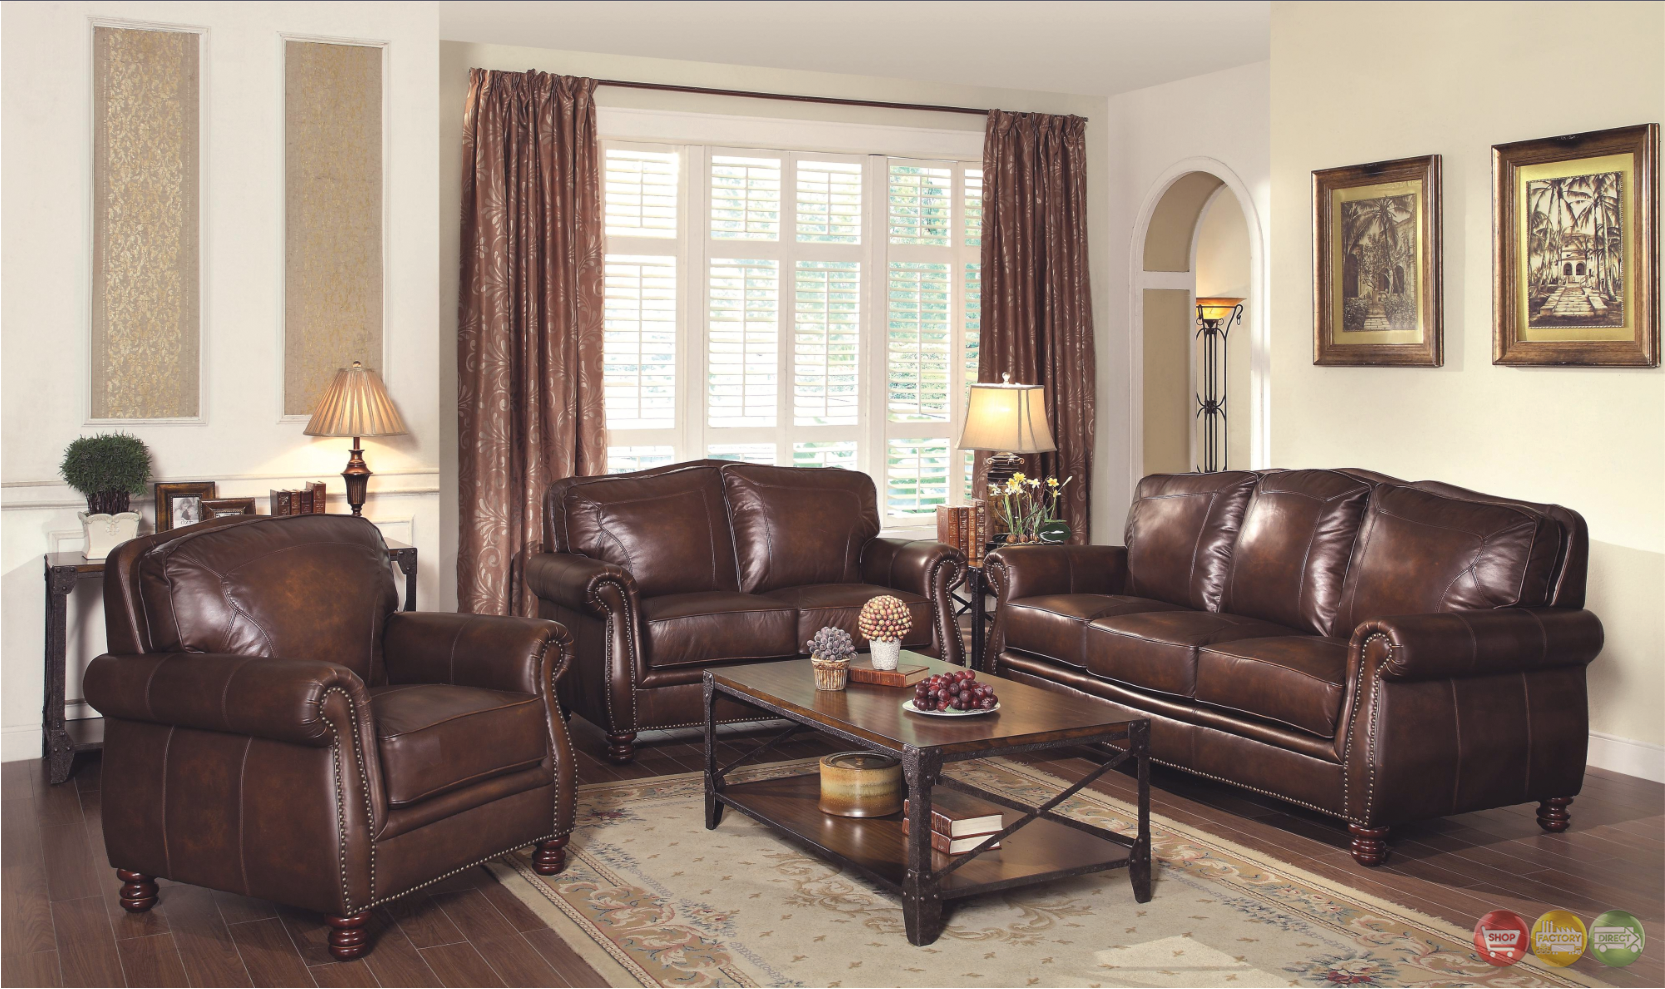 Montbrook Traditional Brown Genuine Leather Sofa Set Rolled Arms Nail Head Trim